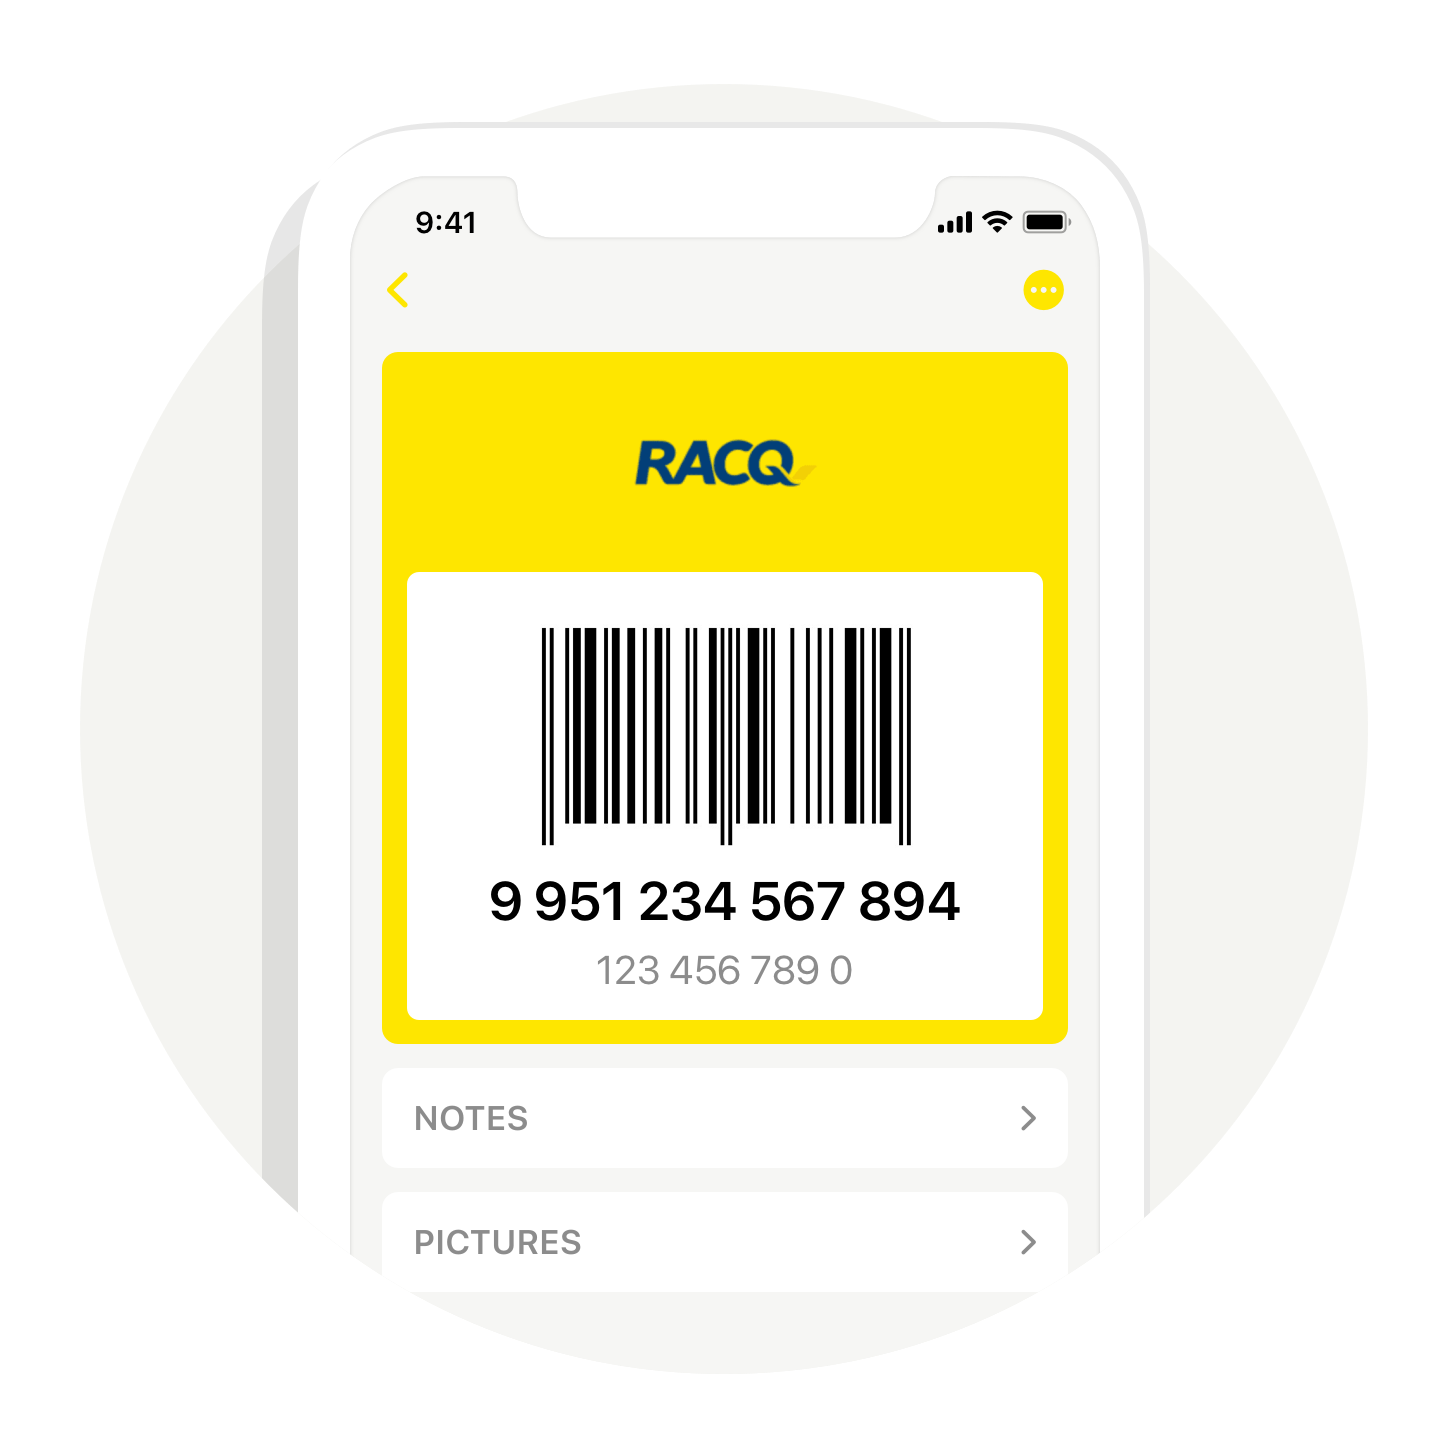 Preview image of the provider's card in the Stocard app